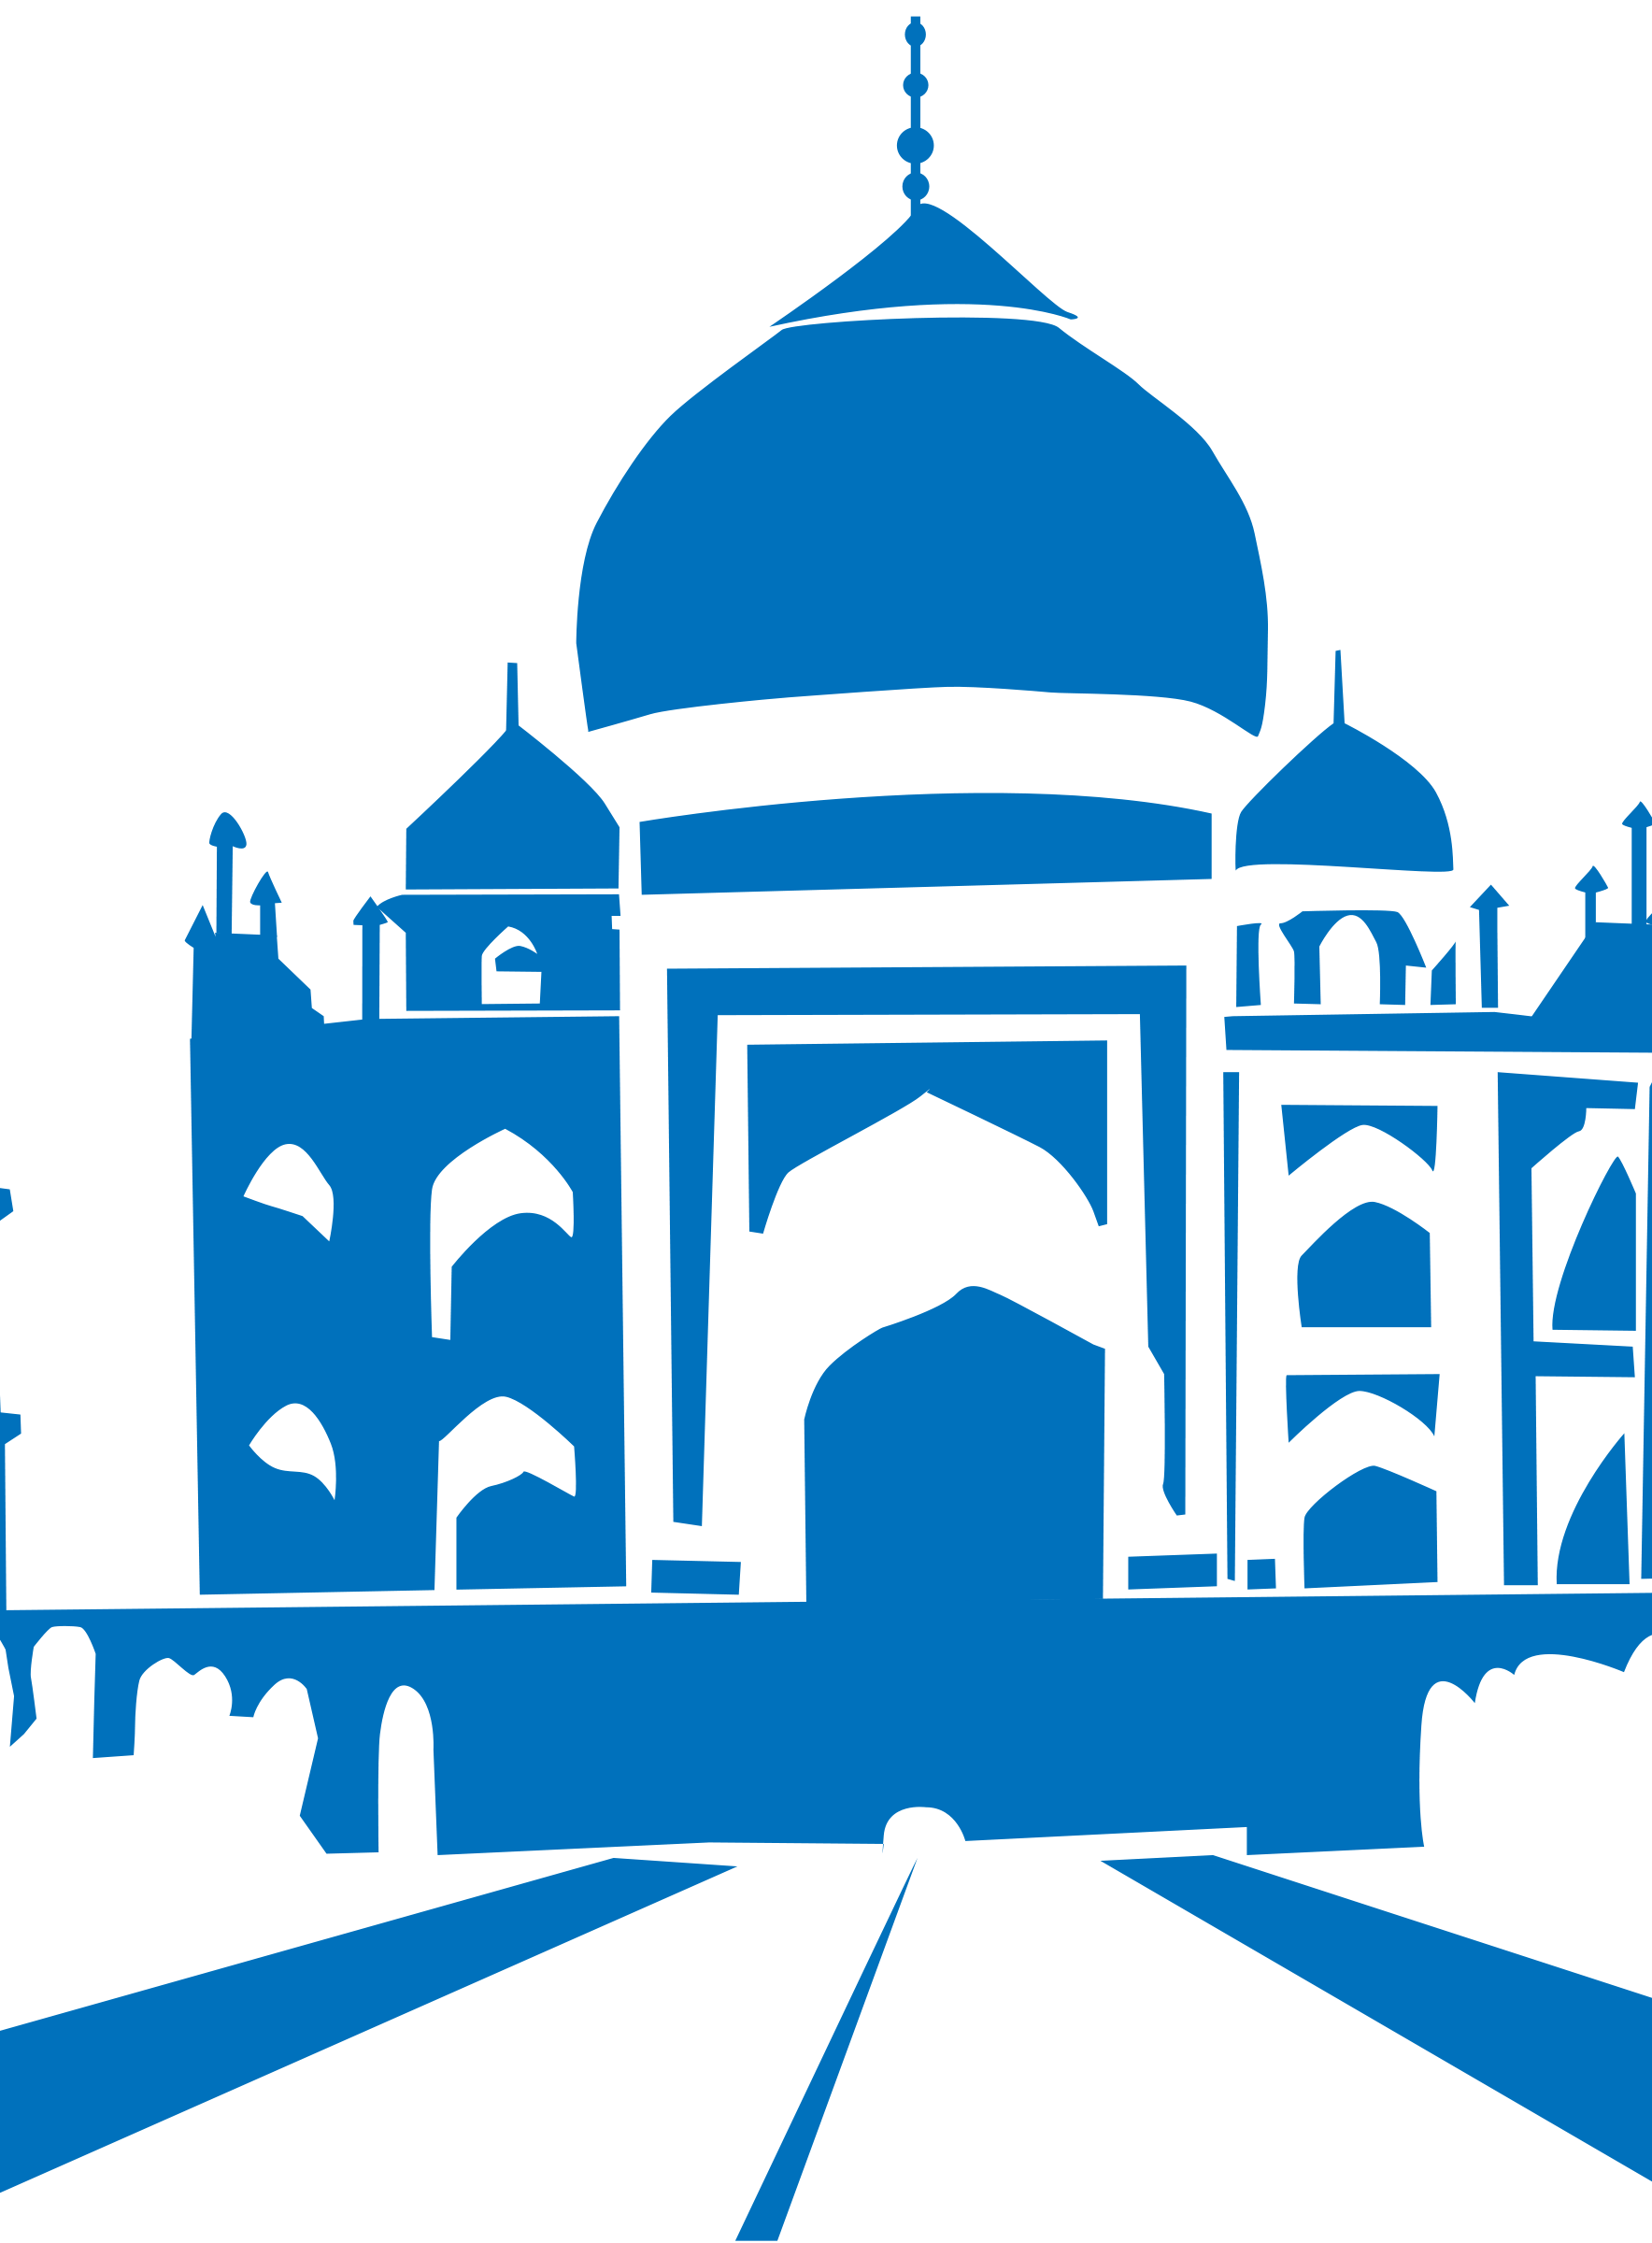 Mahal best india pinterest. Queen clipart taj